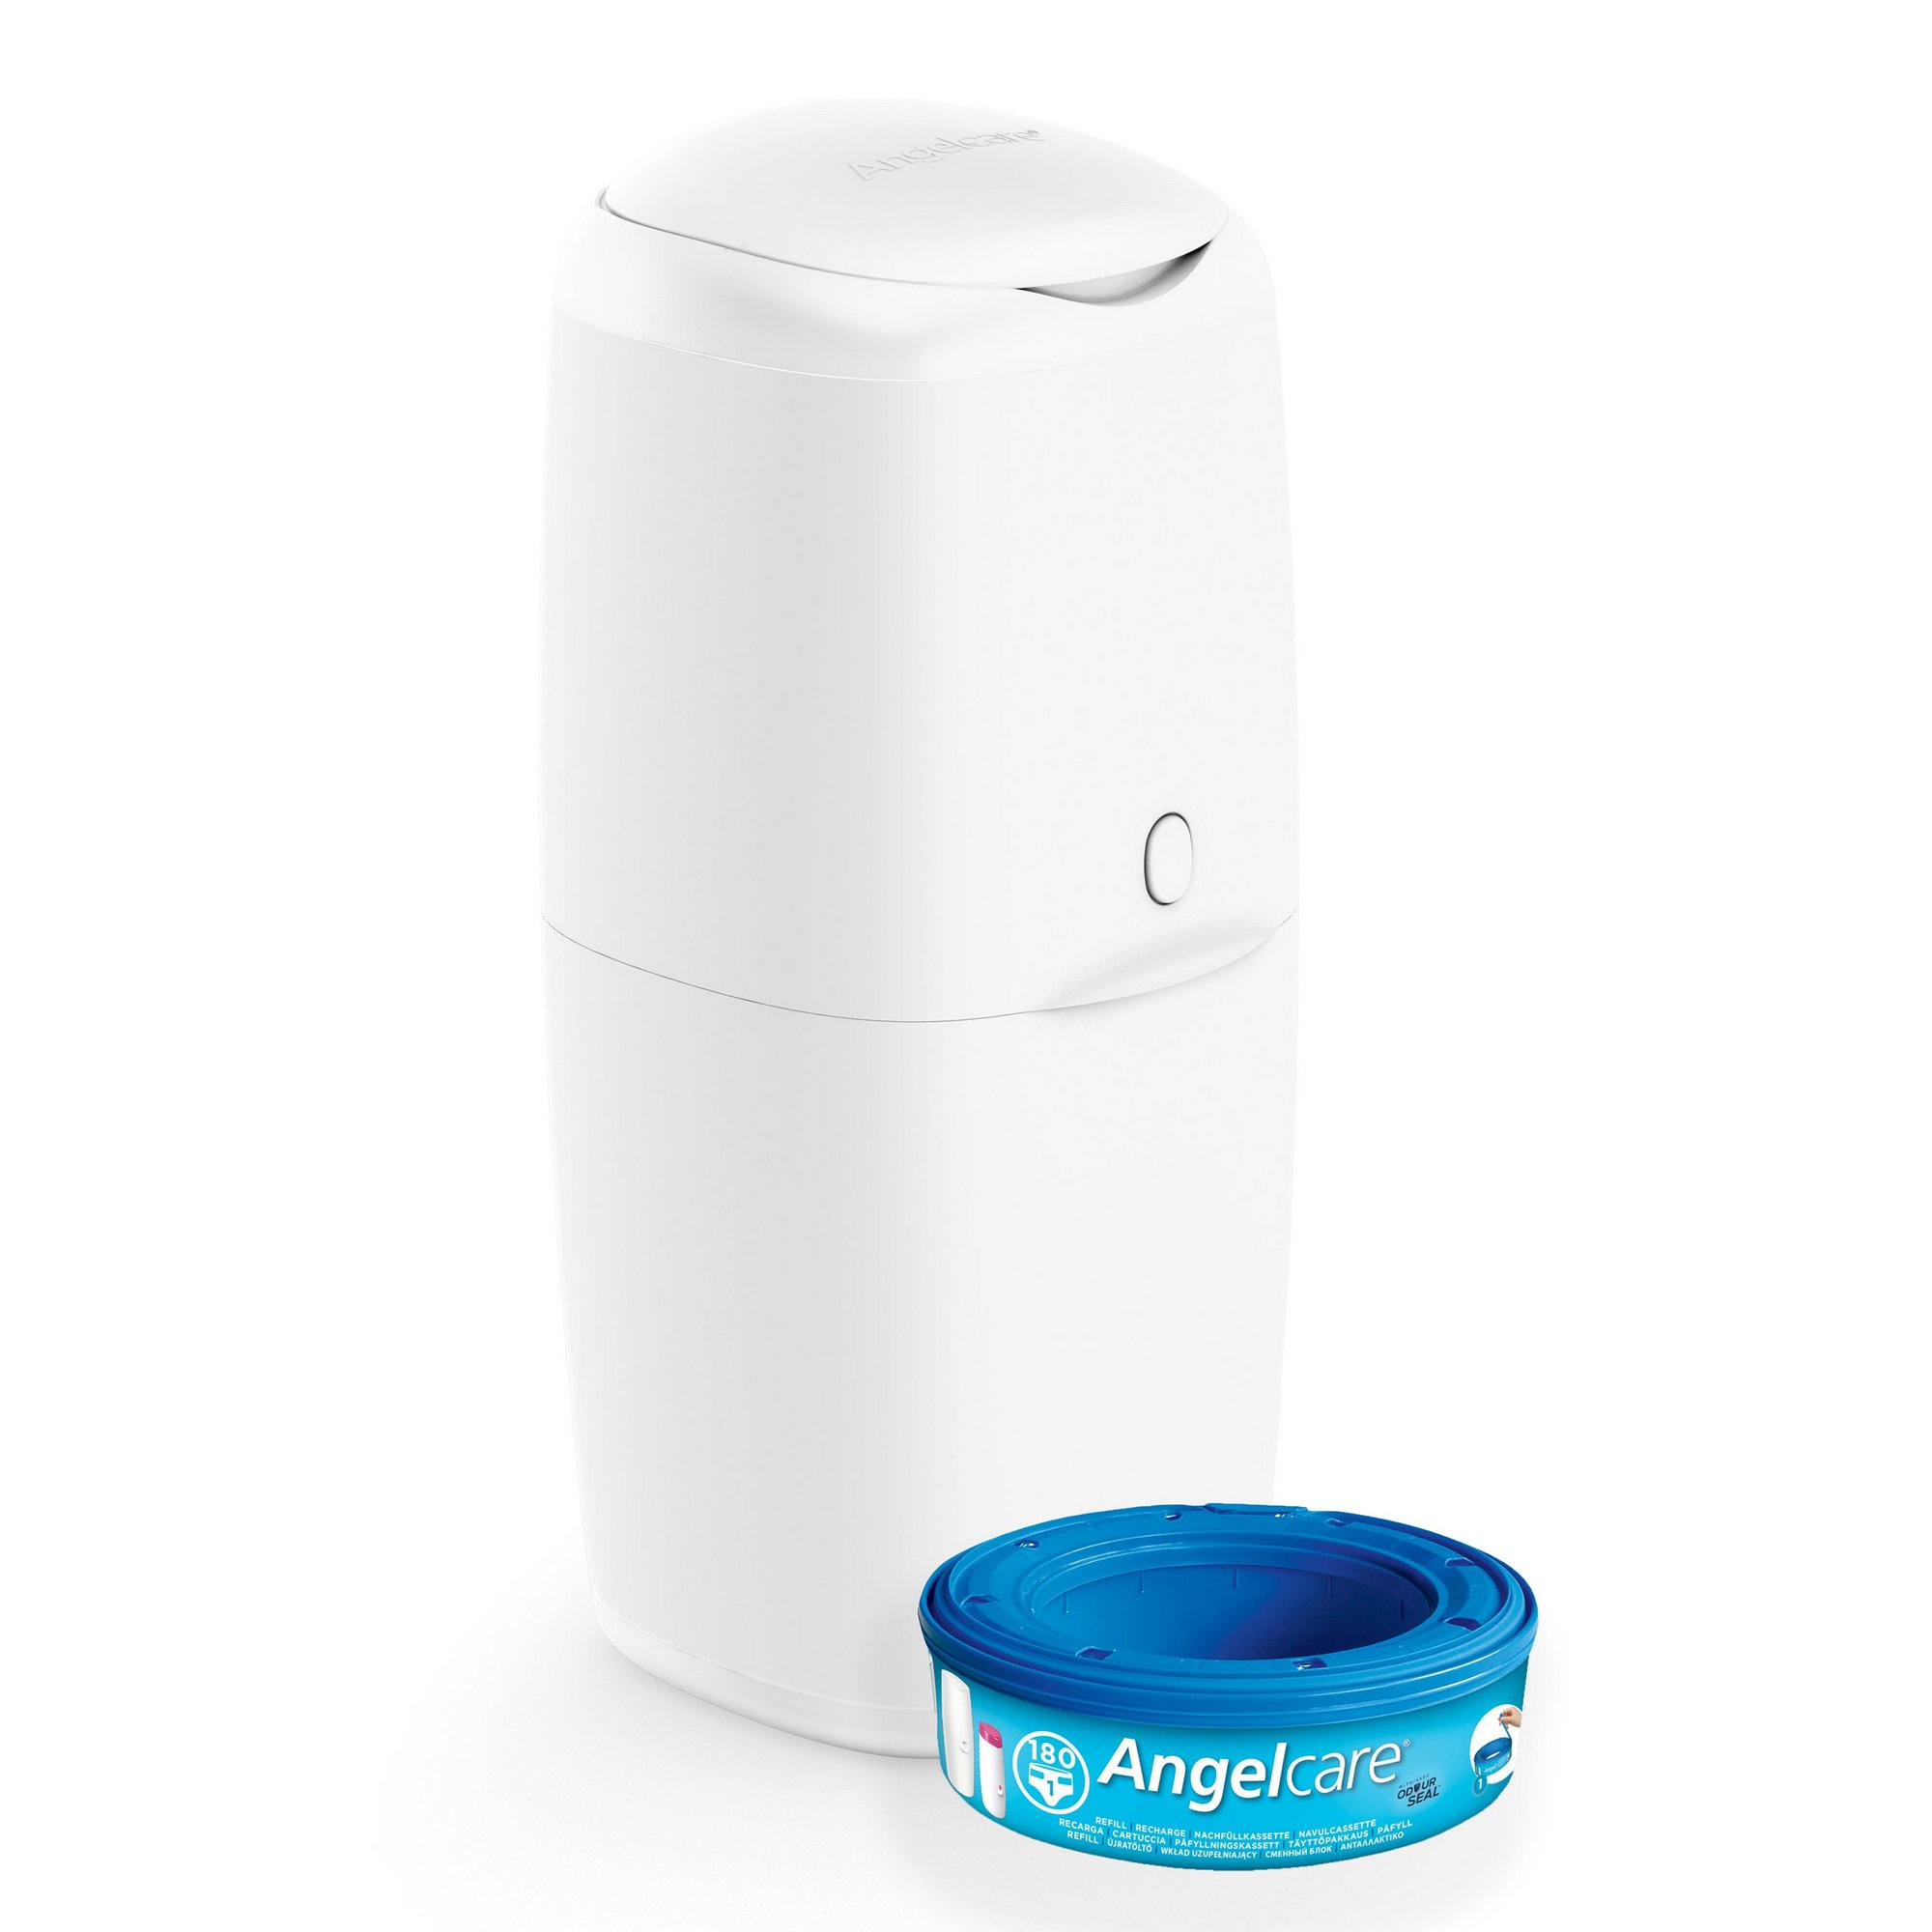 Image of Angelcare Nappy Disposal System